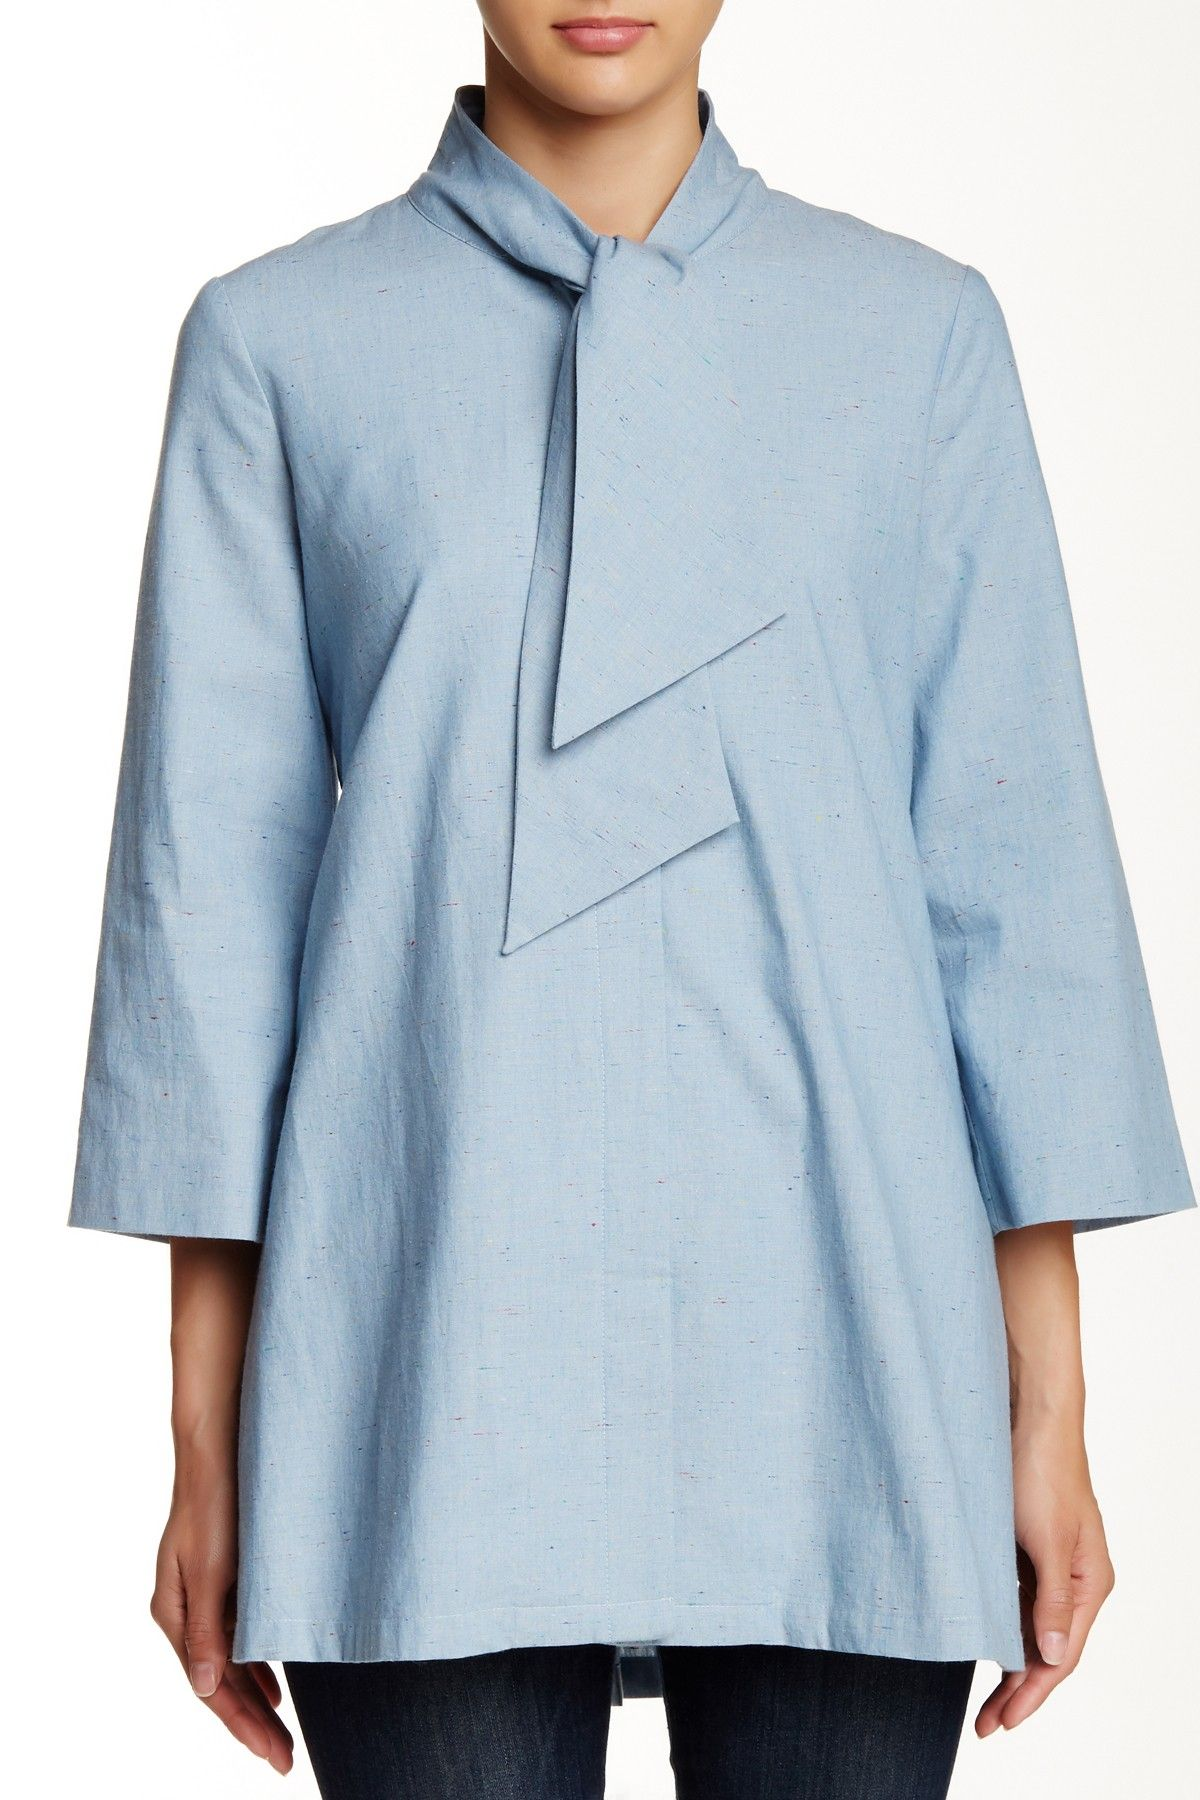 Kayla Trench Coat by Julie Brown on @nordstrom_rack